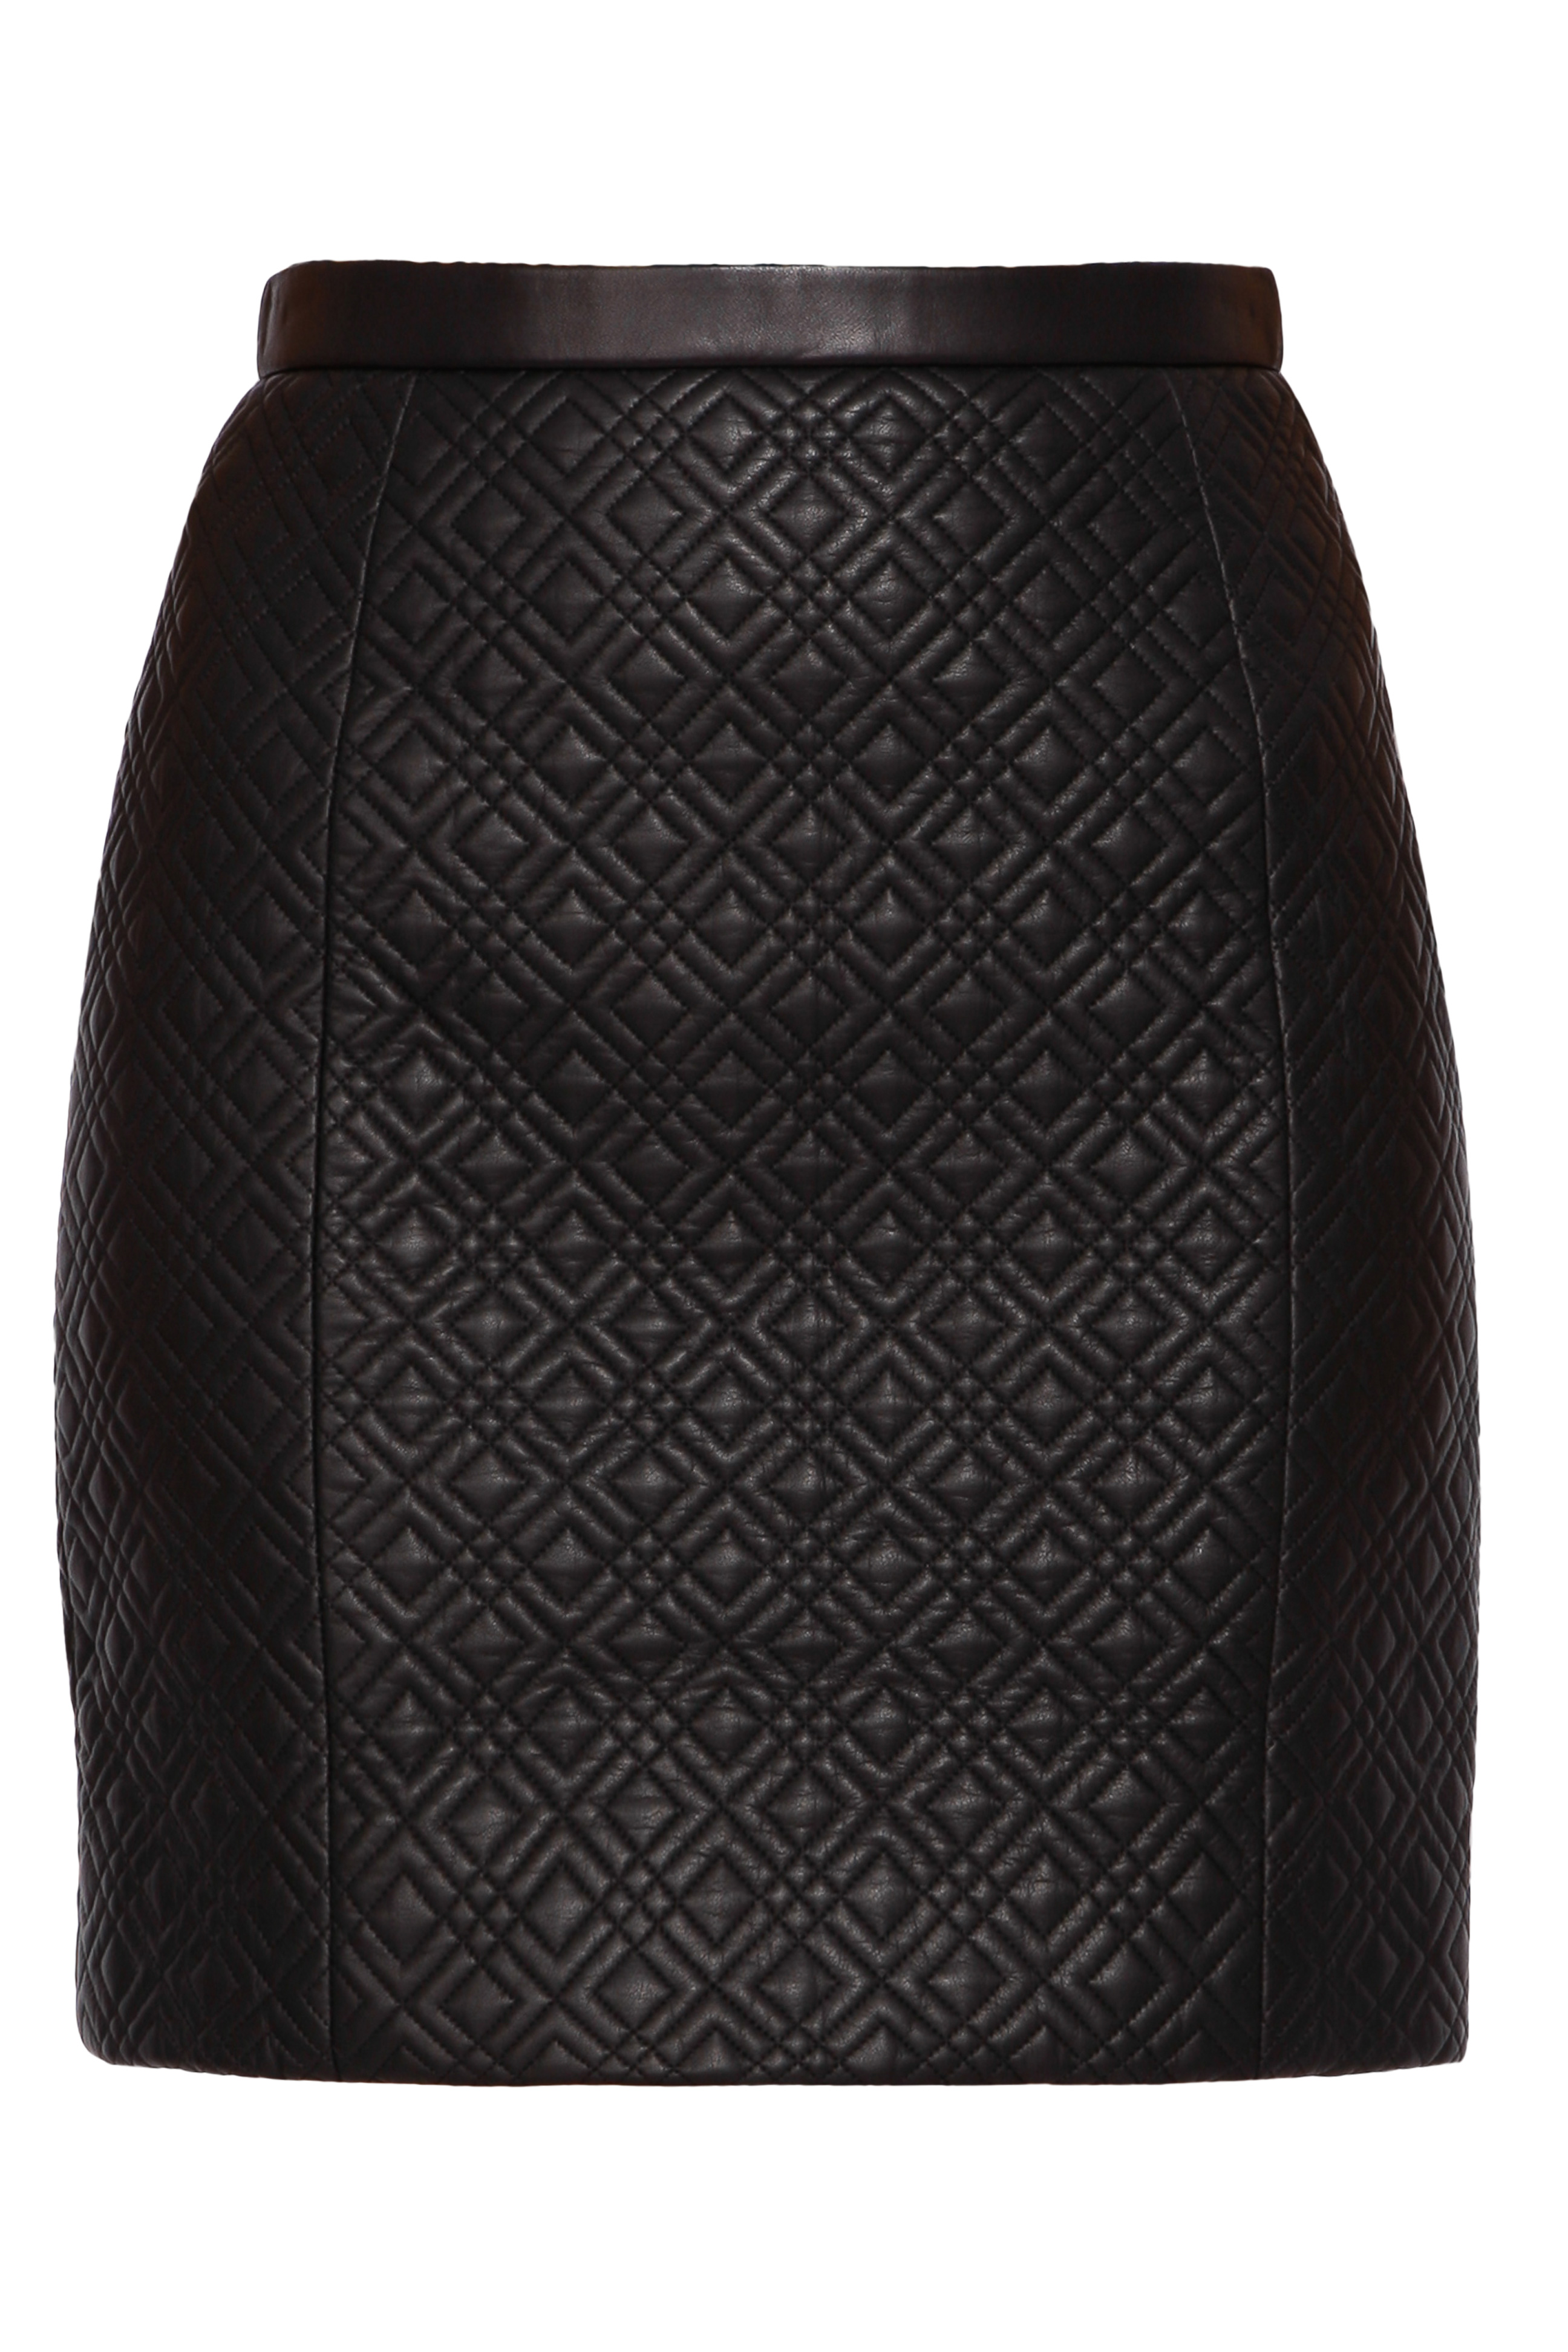 jason wu quilted leather skirt in black lyst